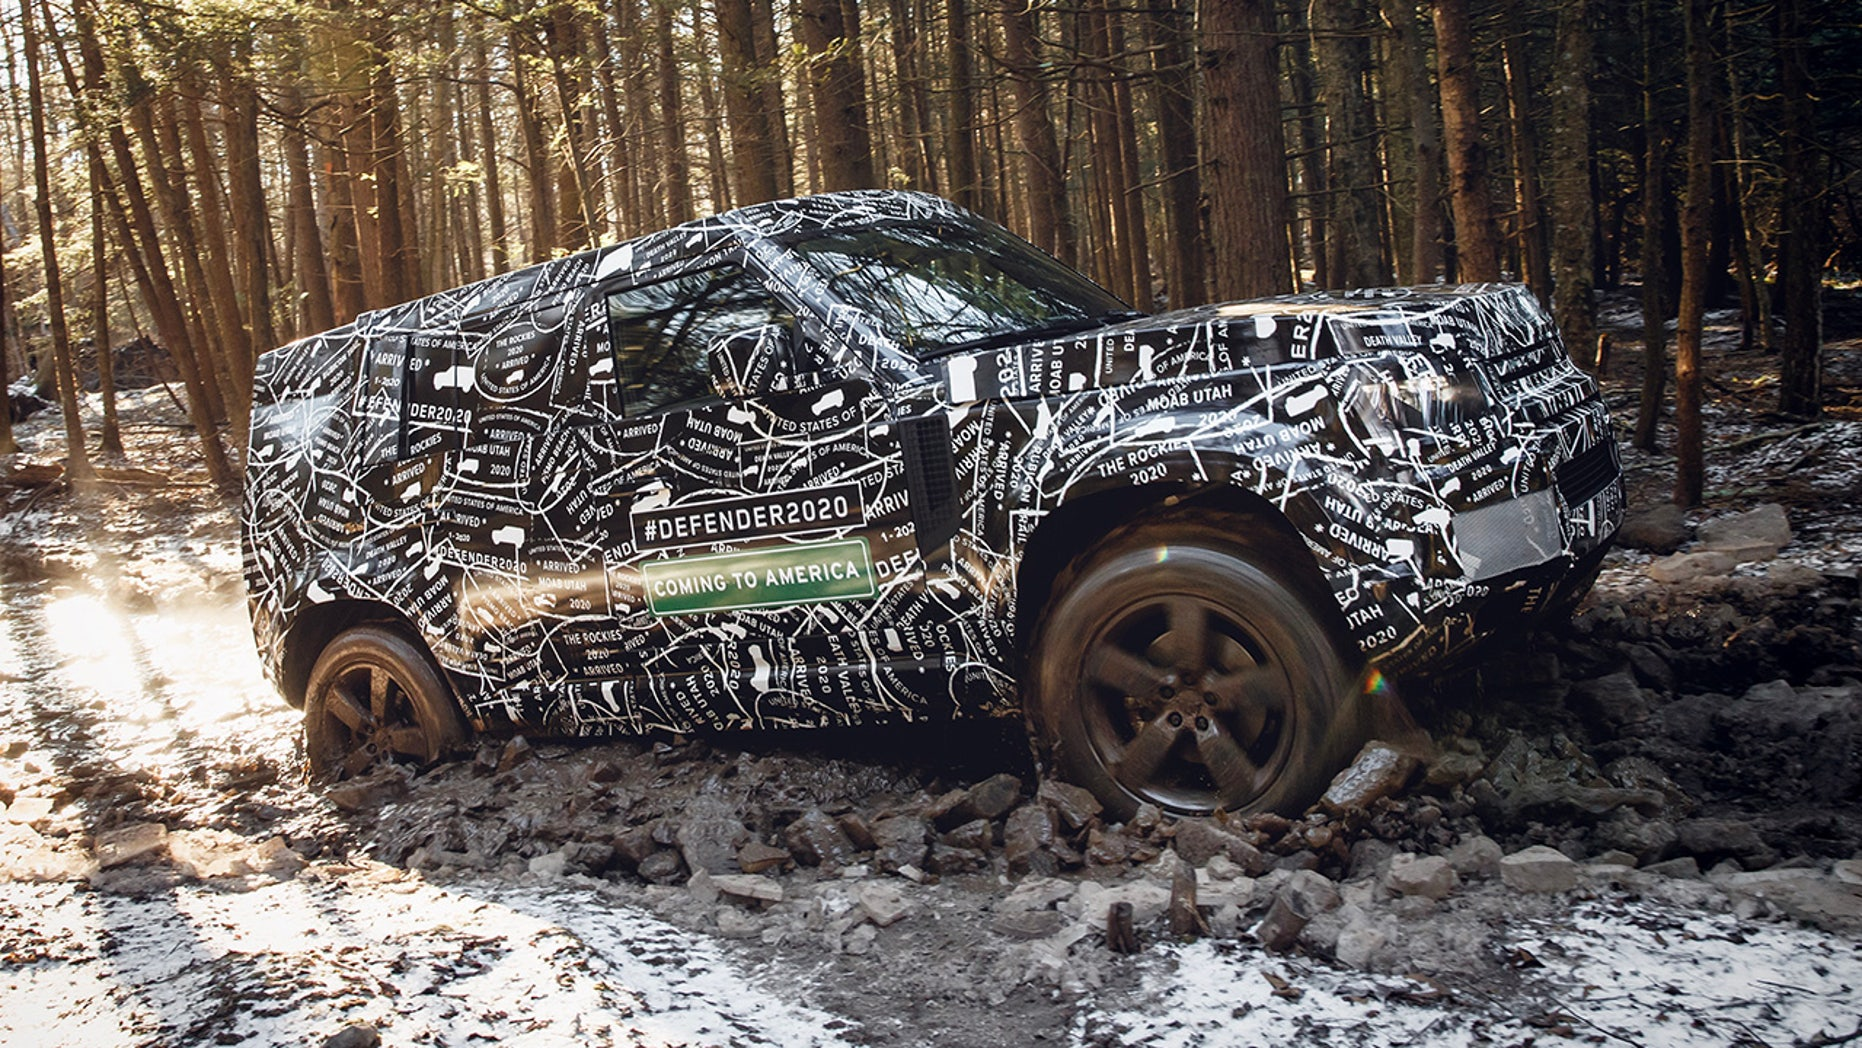 All-new 2020 Land Rover Defender will debut next year